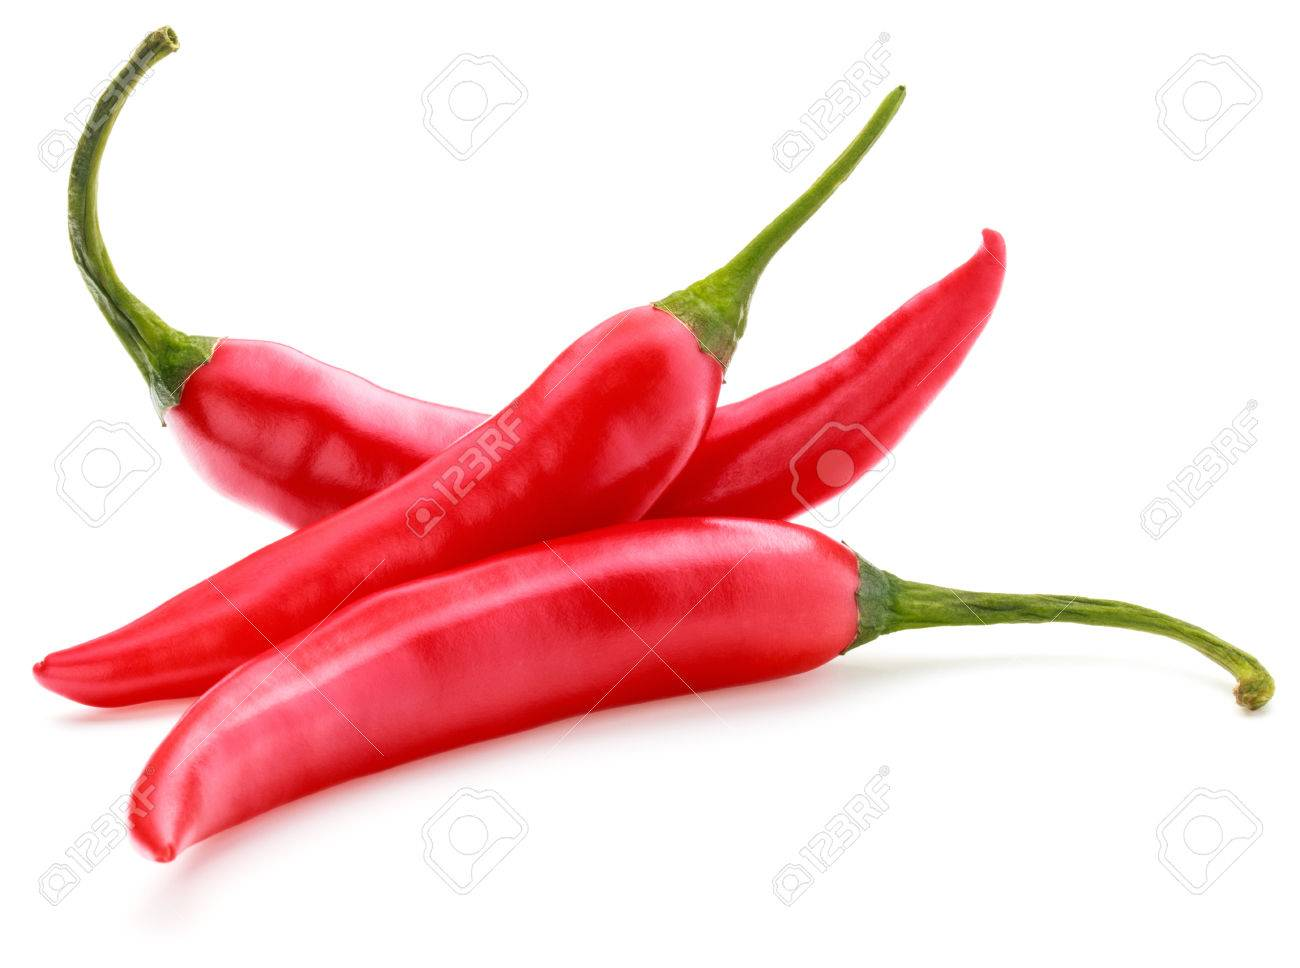 red chilies or chilli cayenne peppers isolated on white background - 41084133